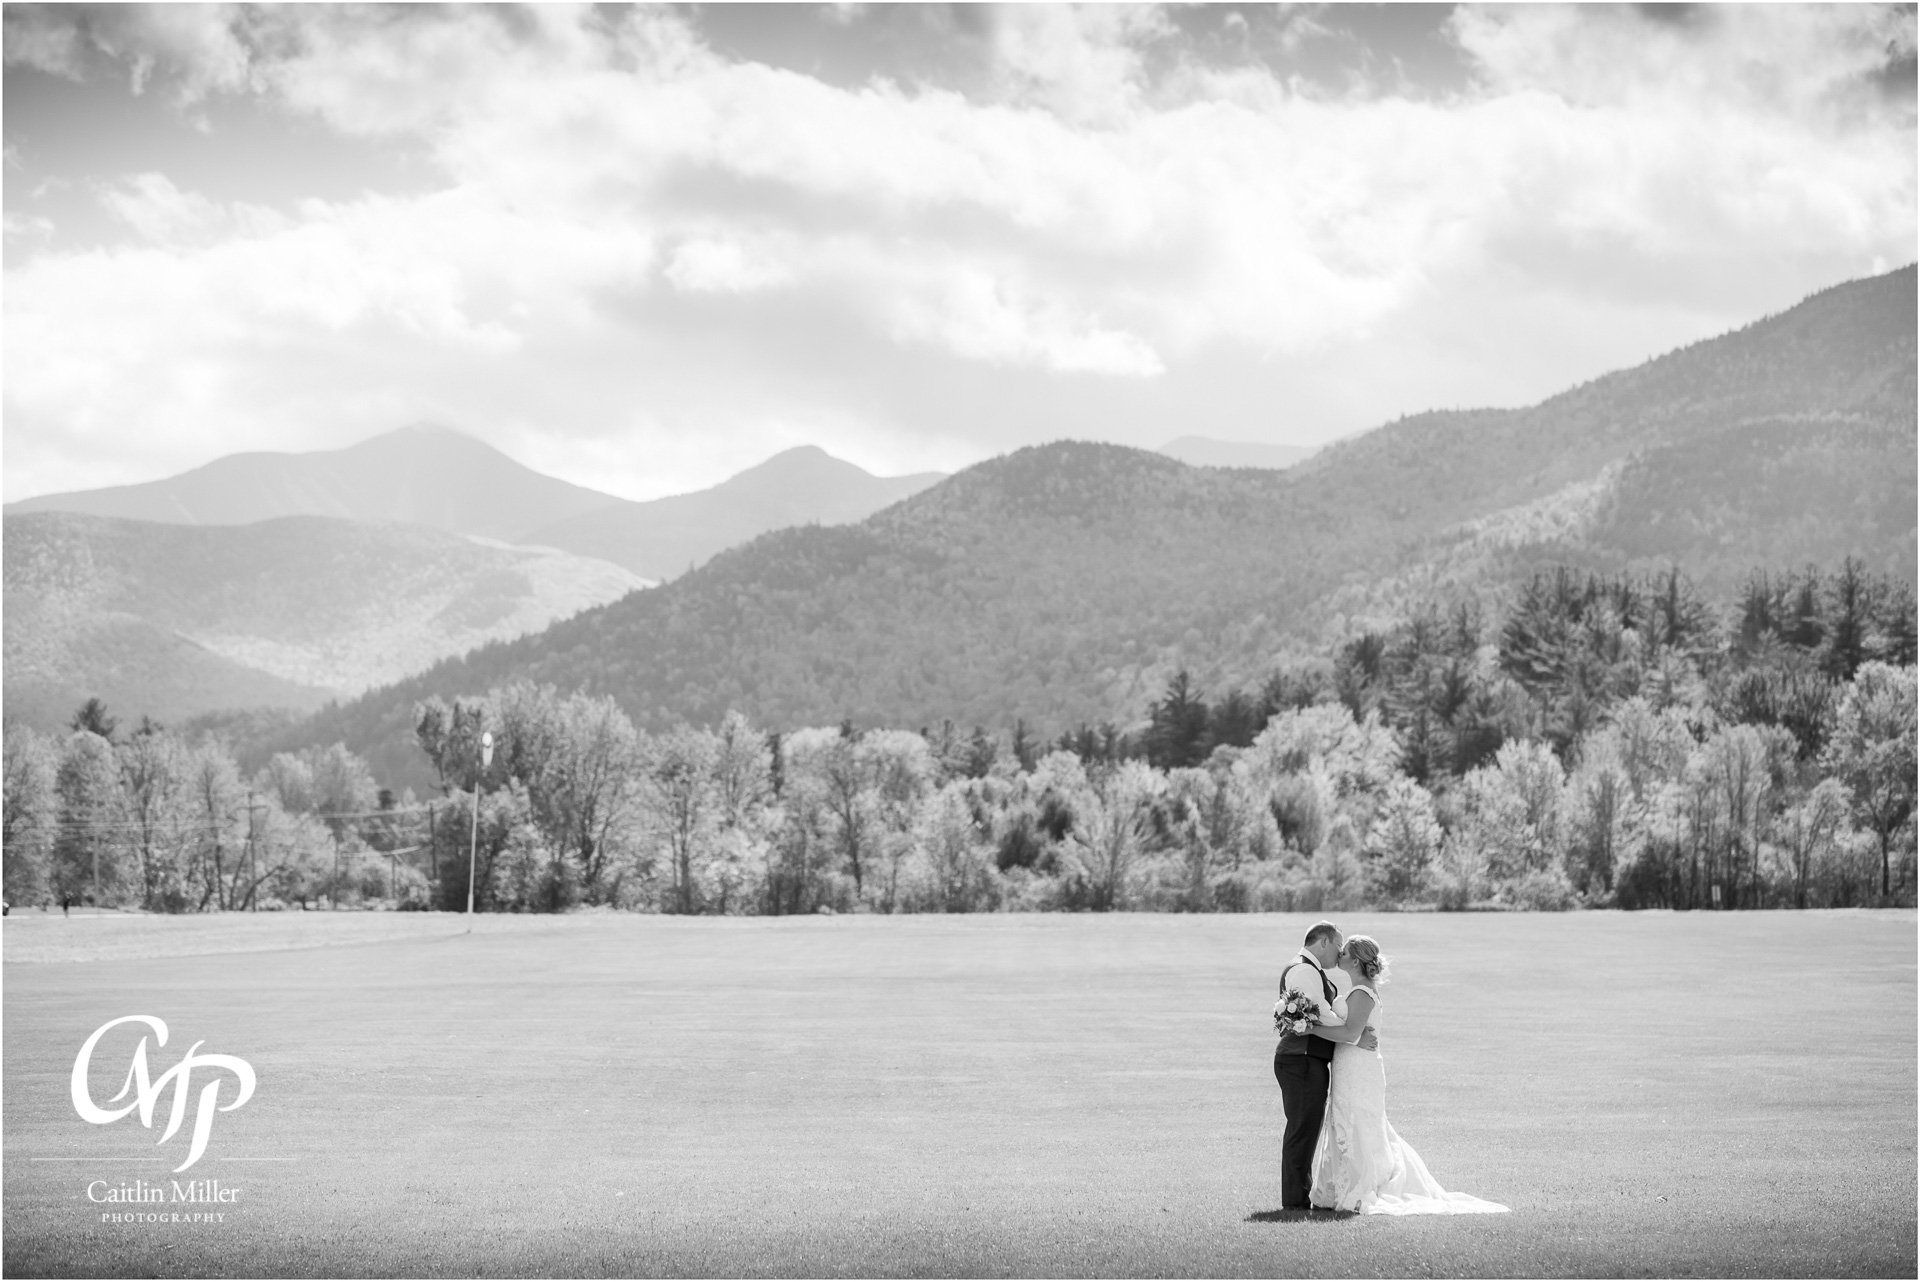 thompson-24.jpg from Christine and James's Adirondack Wedding all over the high peaks in Lake Placid, NY by Lake Placid Wedding Photographer Caitlin Miller Photography. Lake George Wedding Photographer. Keene Valley wedding photographer. Albany wedding photographer. Keene Wedding Photographer. Saratoga Wedding Photographer